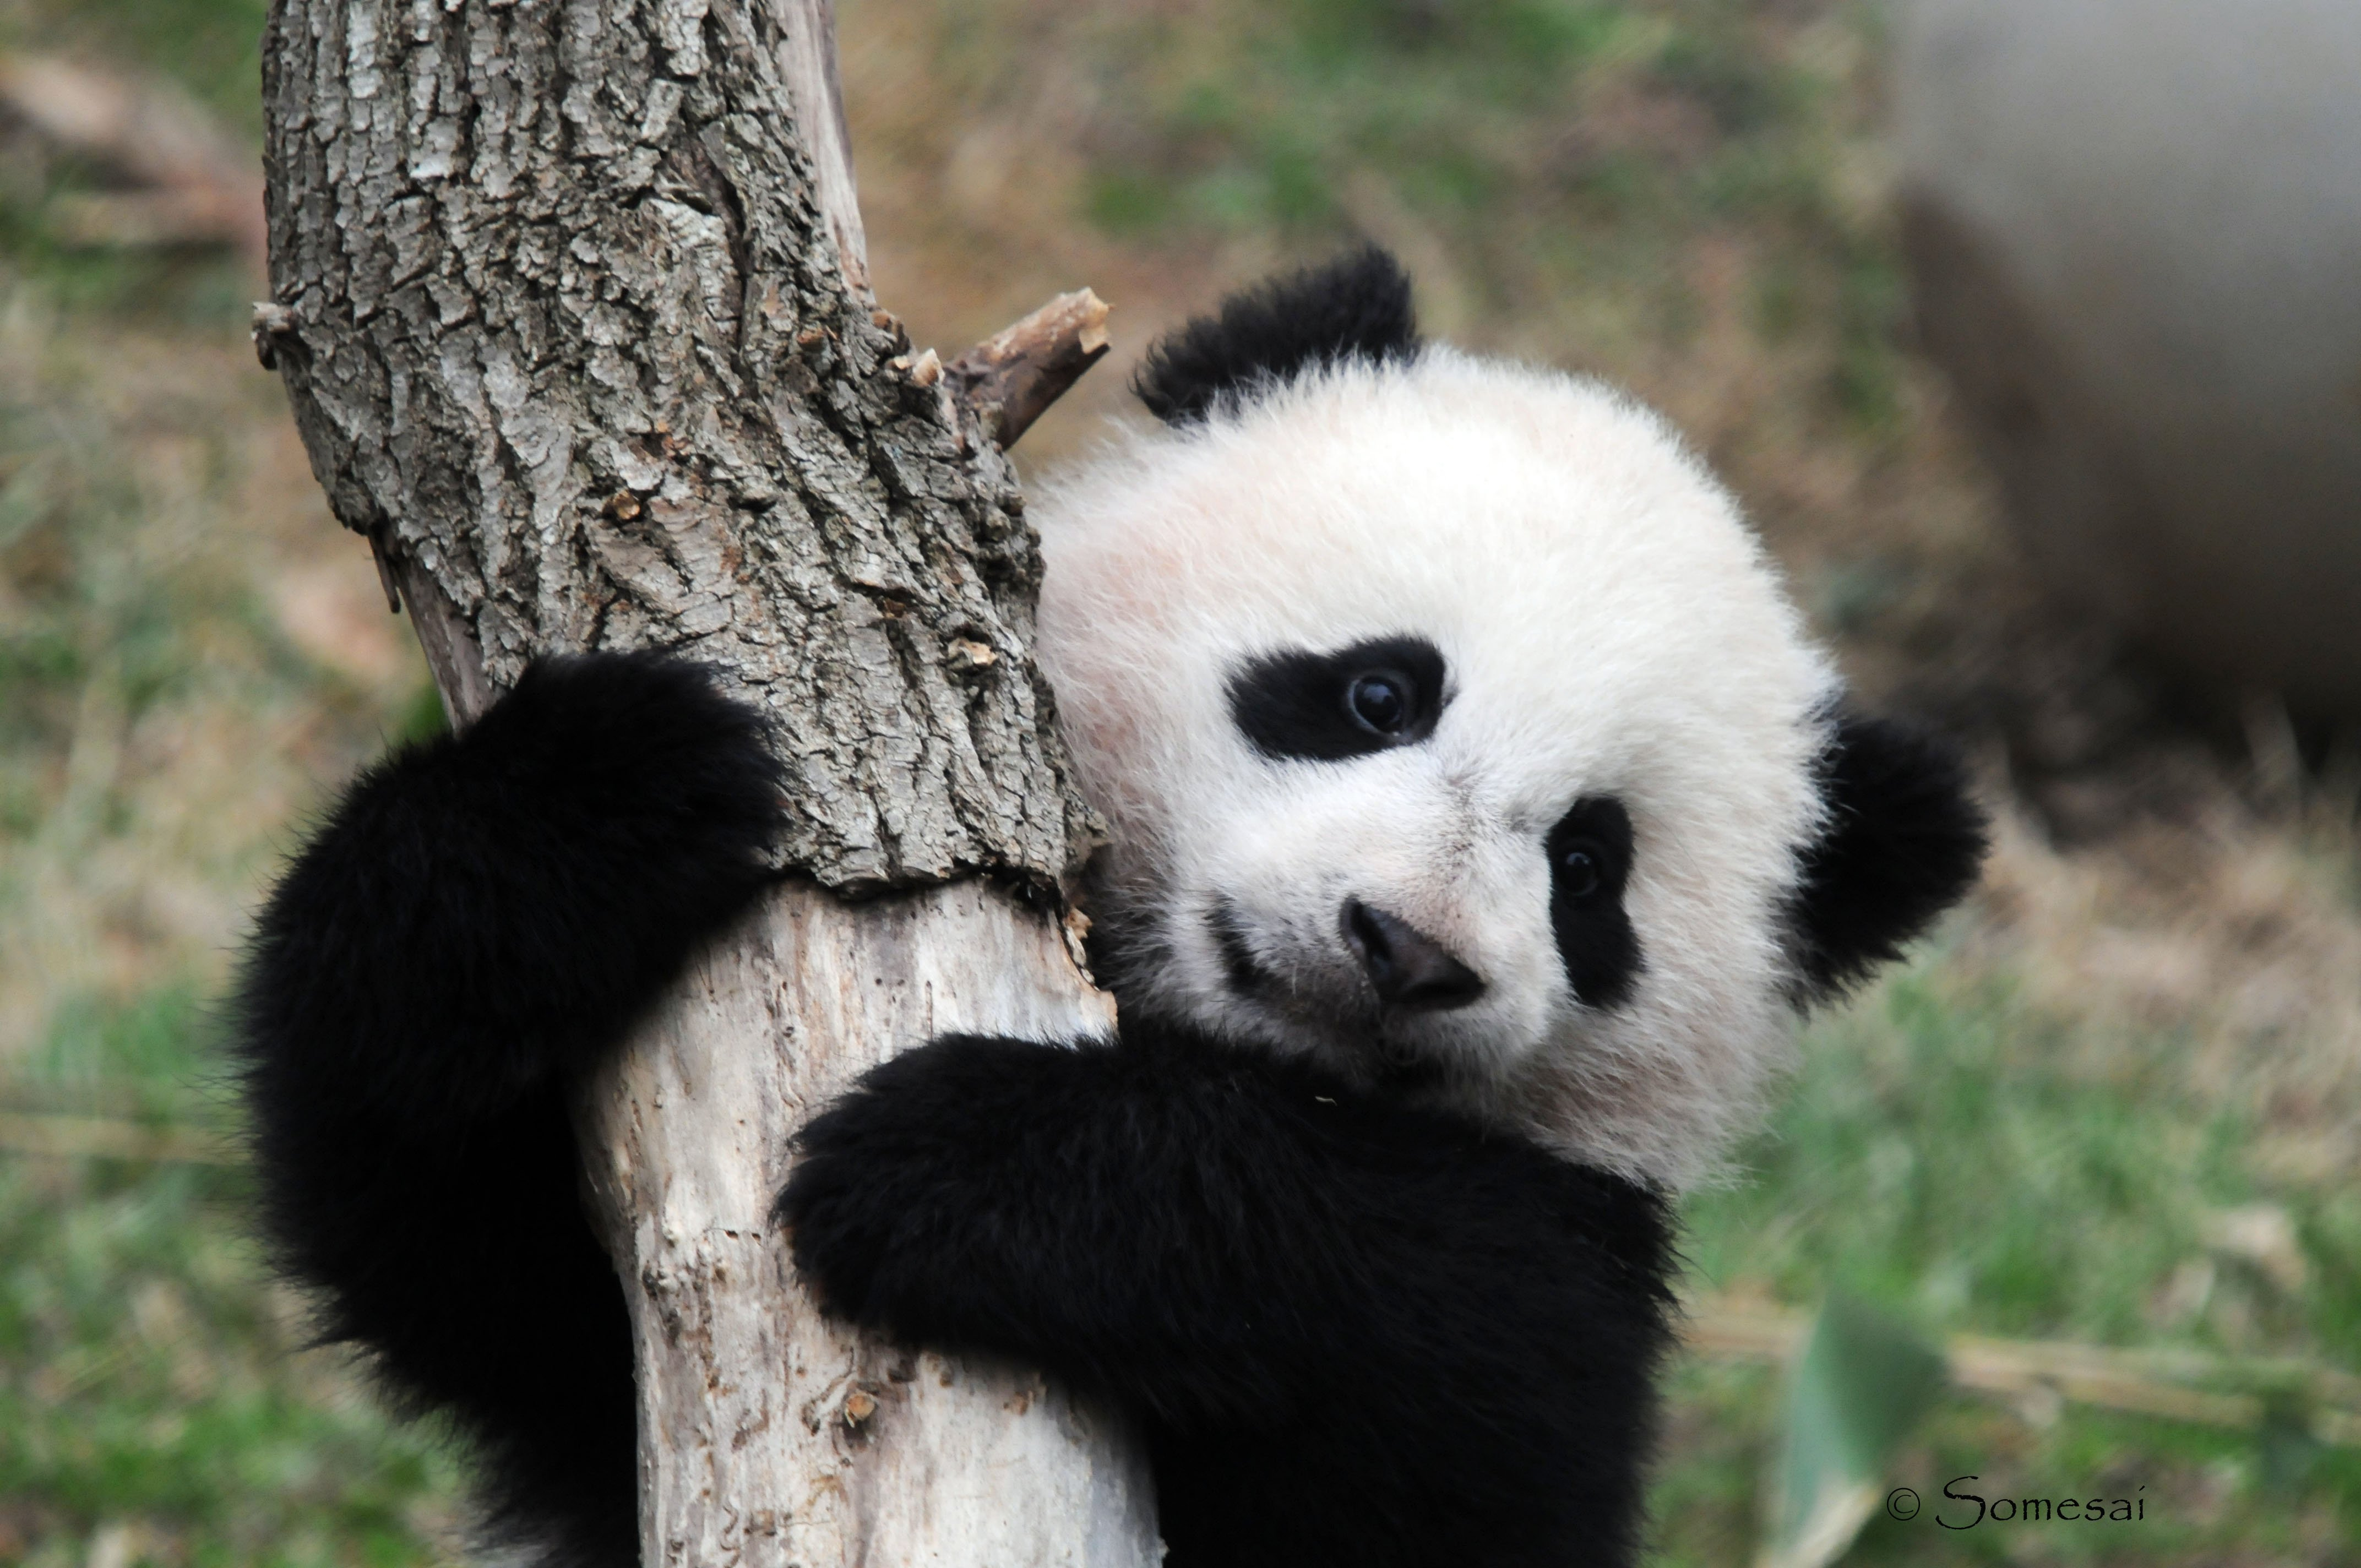 965x602px Sweet Cute Panda Bear | #345270